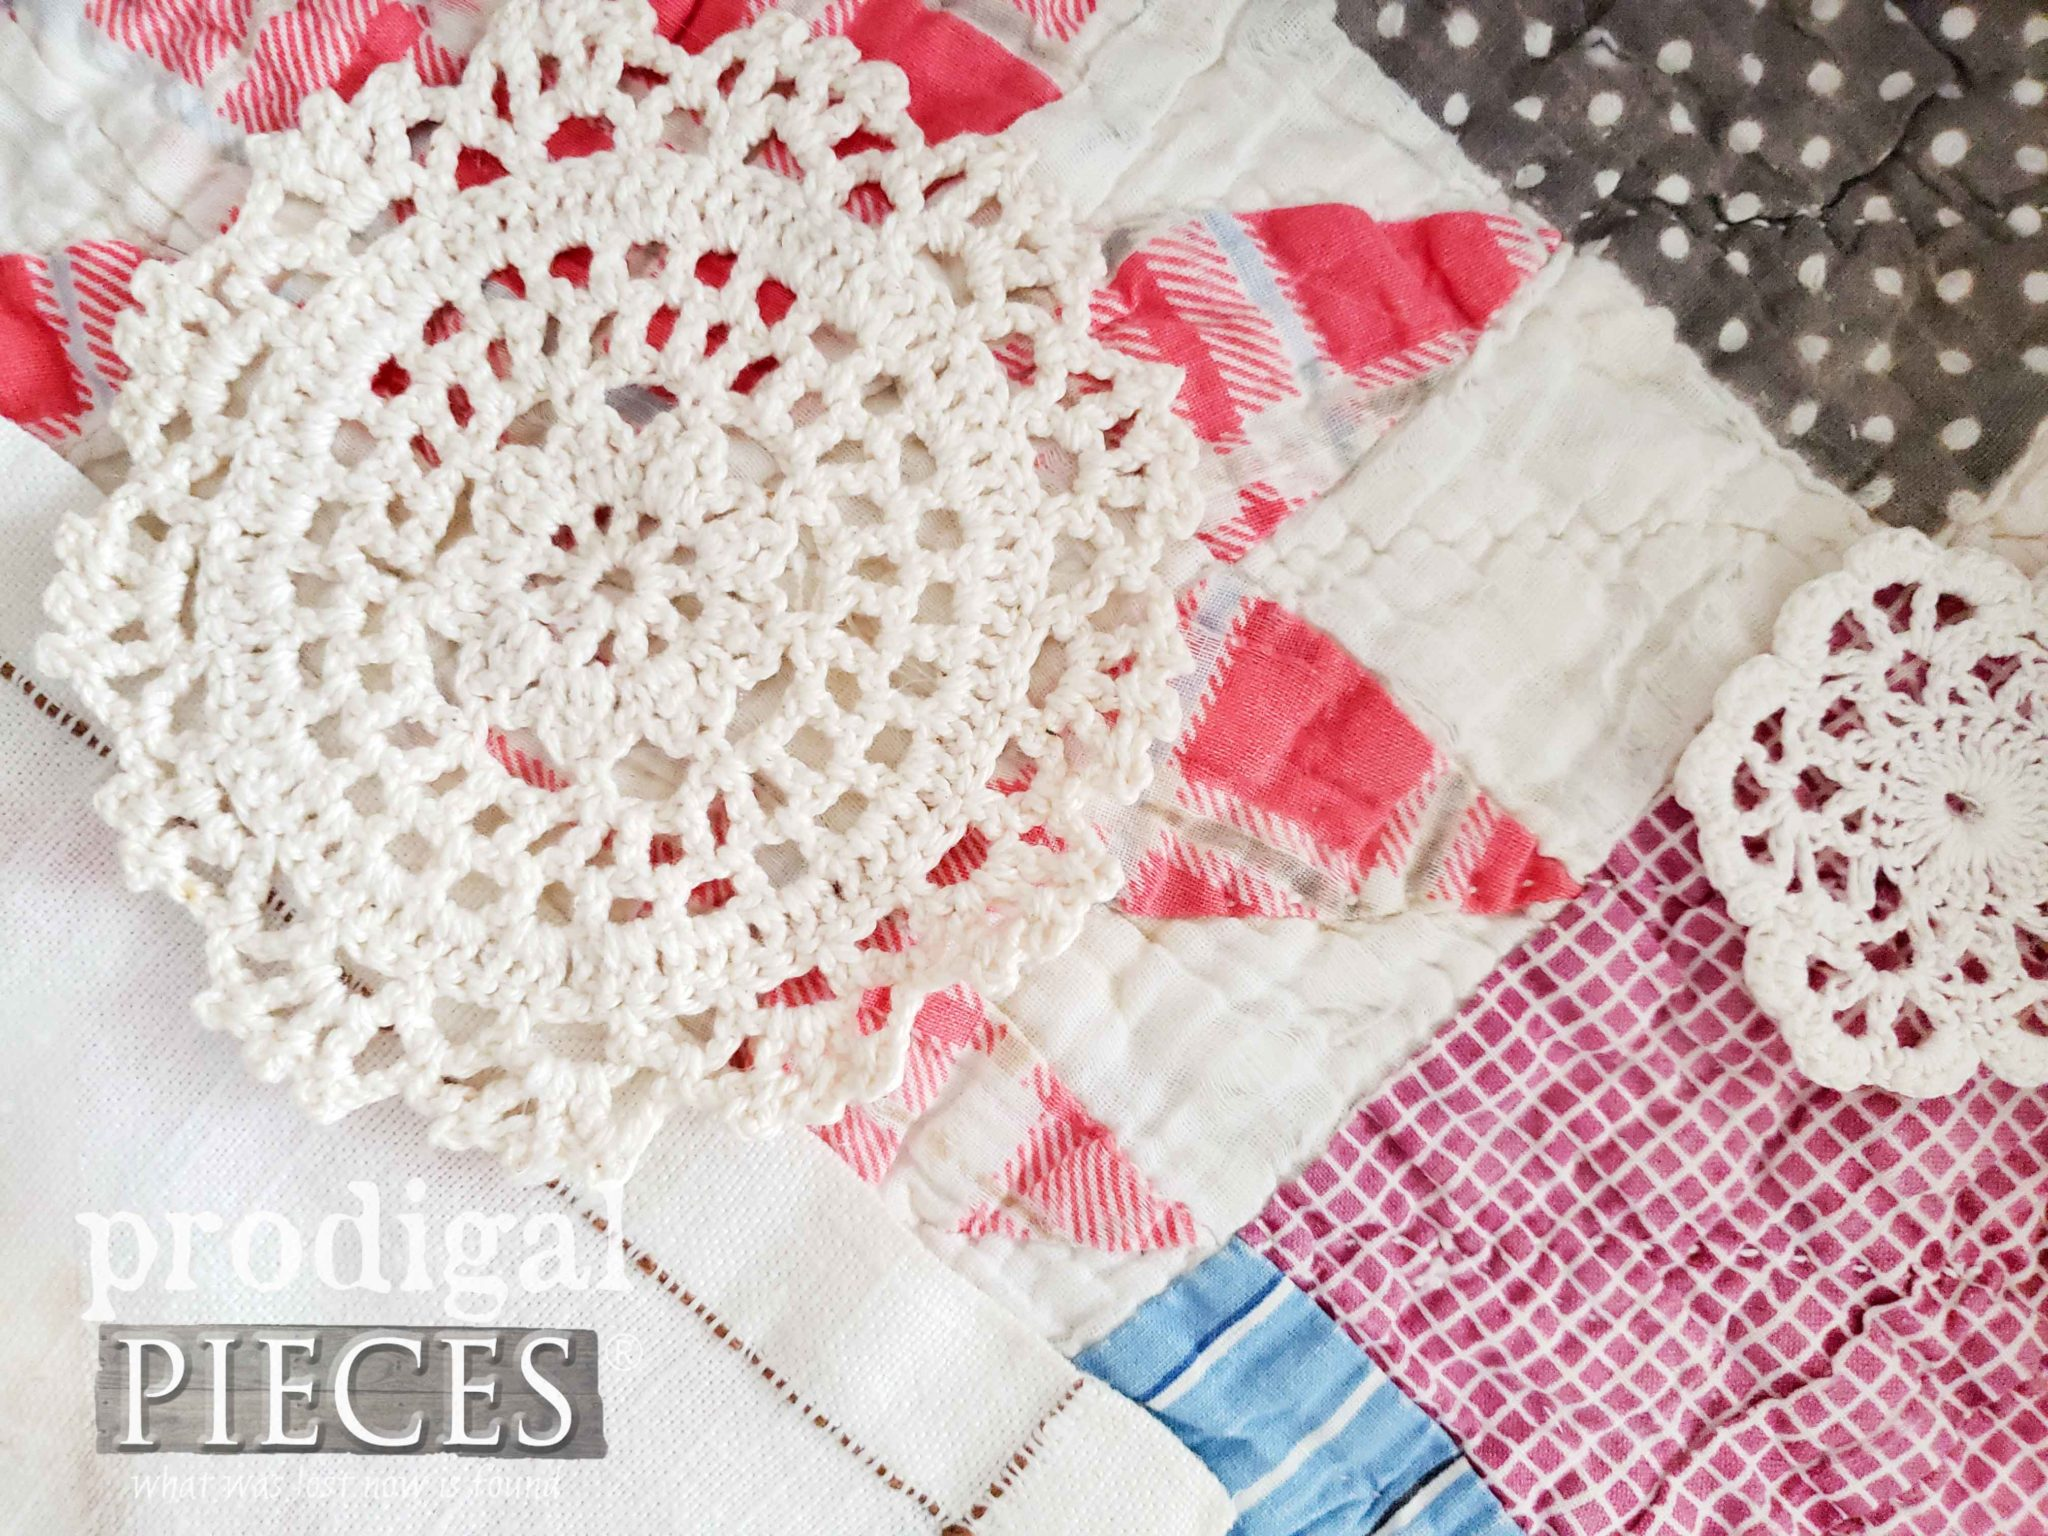 Hand-Stitched Tattered Quilt and Doilies for Mixed Media Art by Larissa of Prodigal Pieces | prodigalpieces.com